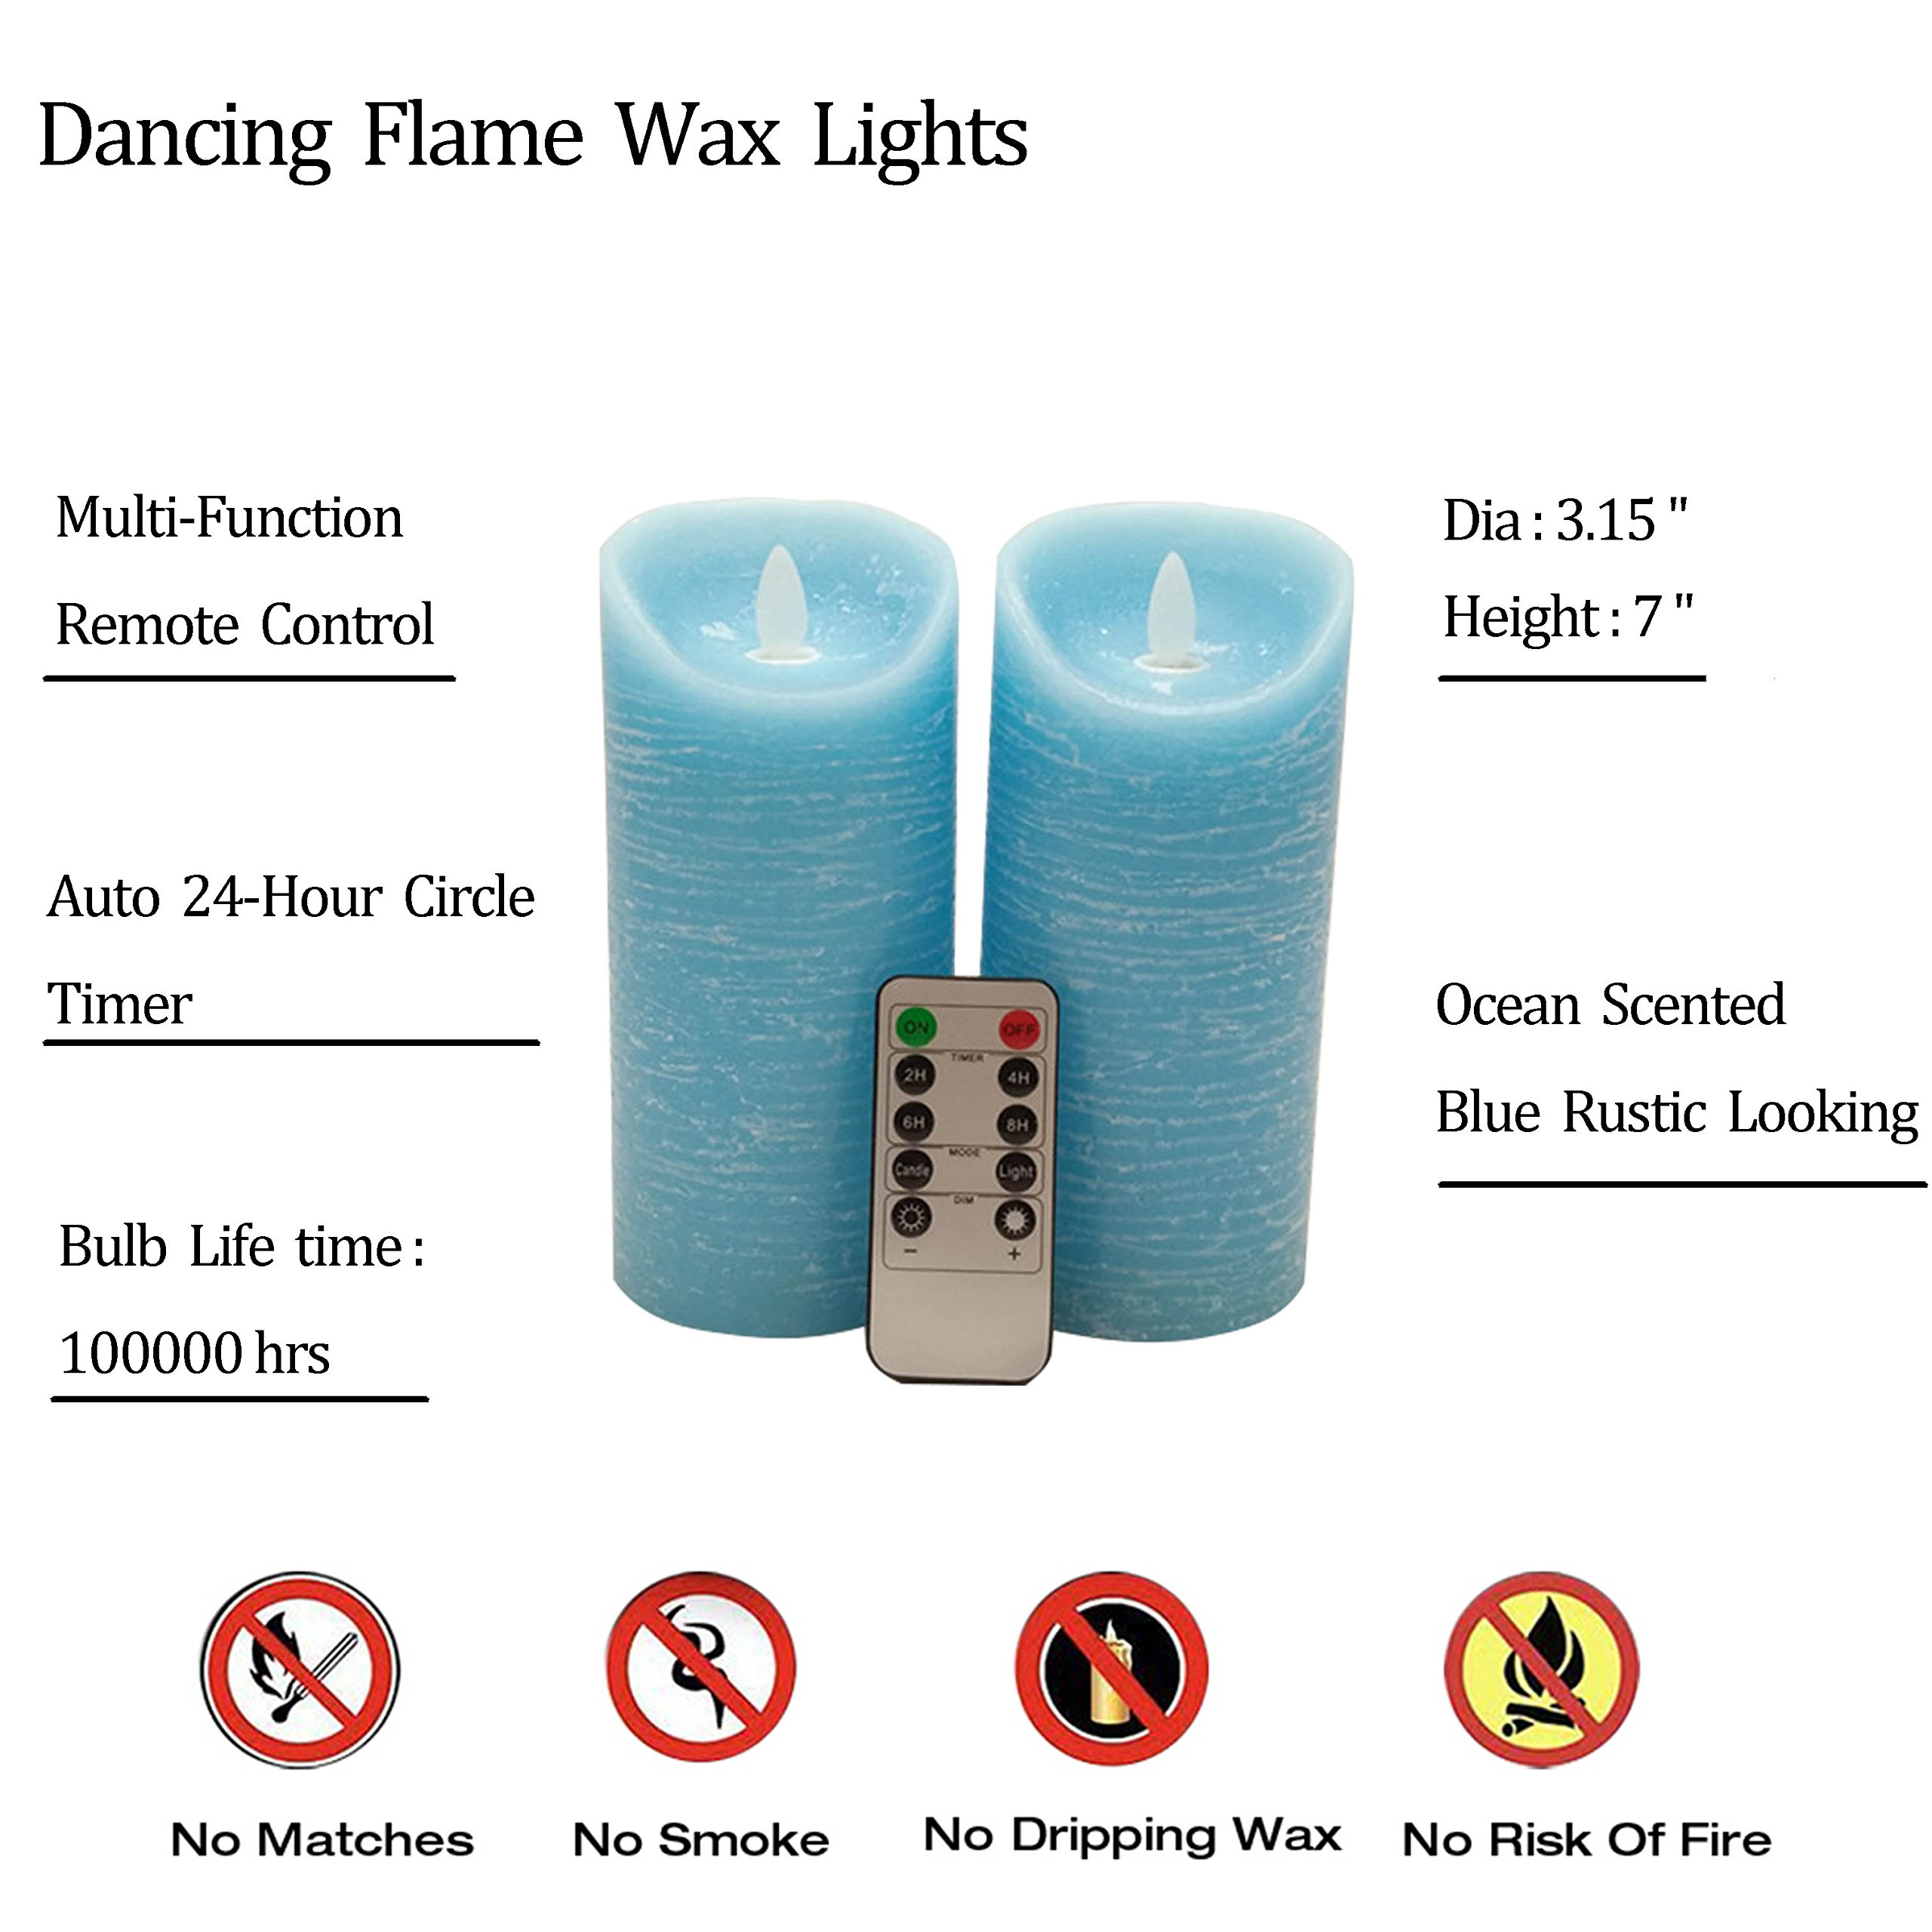 Adoria Dancing Flame LED Candles Auto-Cycle Timer,Real Wax Blue Rustic Remote Set of 2-Ocean Scented-Dia3.15x7inch